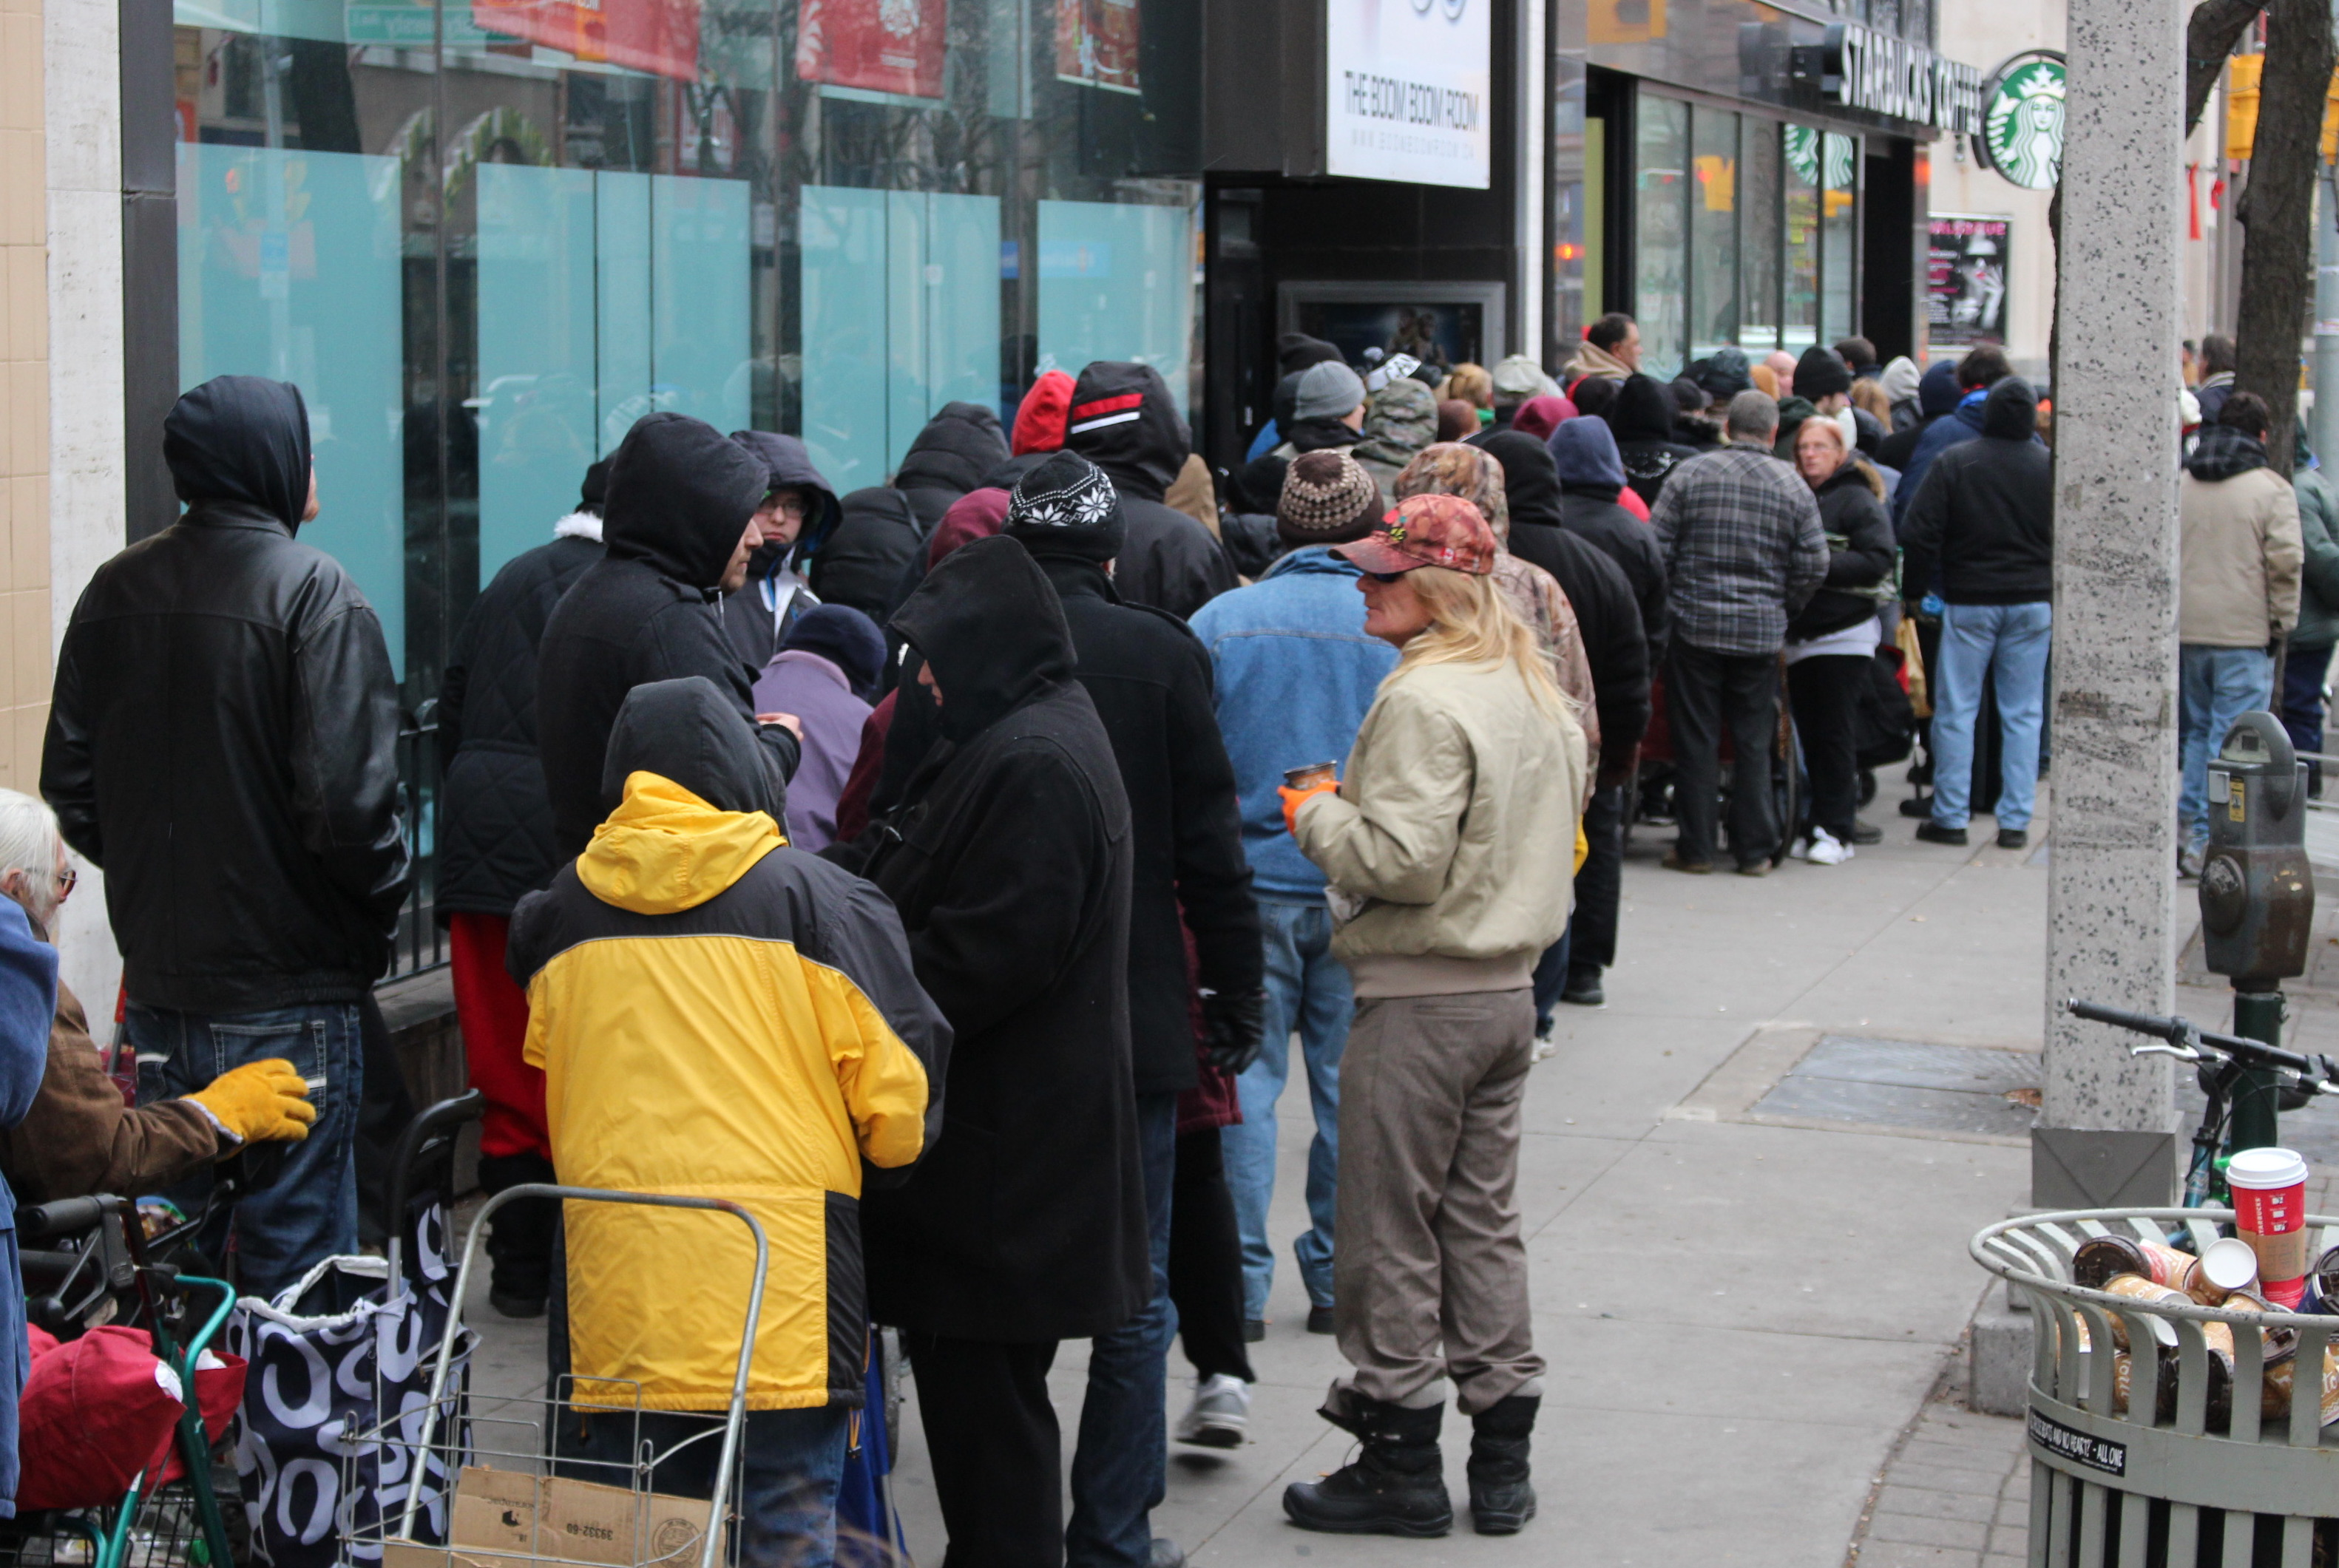 People in need line up along Ouellette Ave. in Windsor in hopes of receiving one of 500 turkeys being given away, December 17, 2014. (photo by Mike Vlasveld)